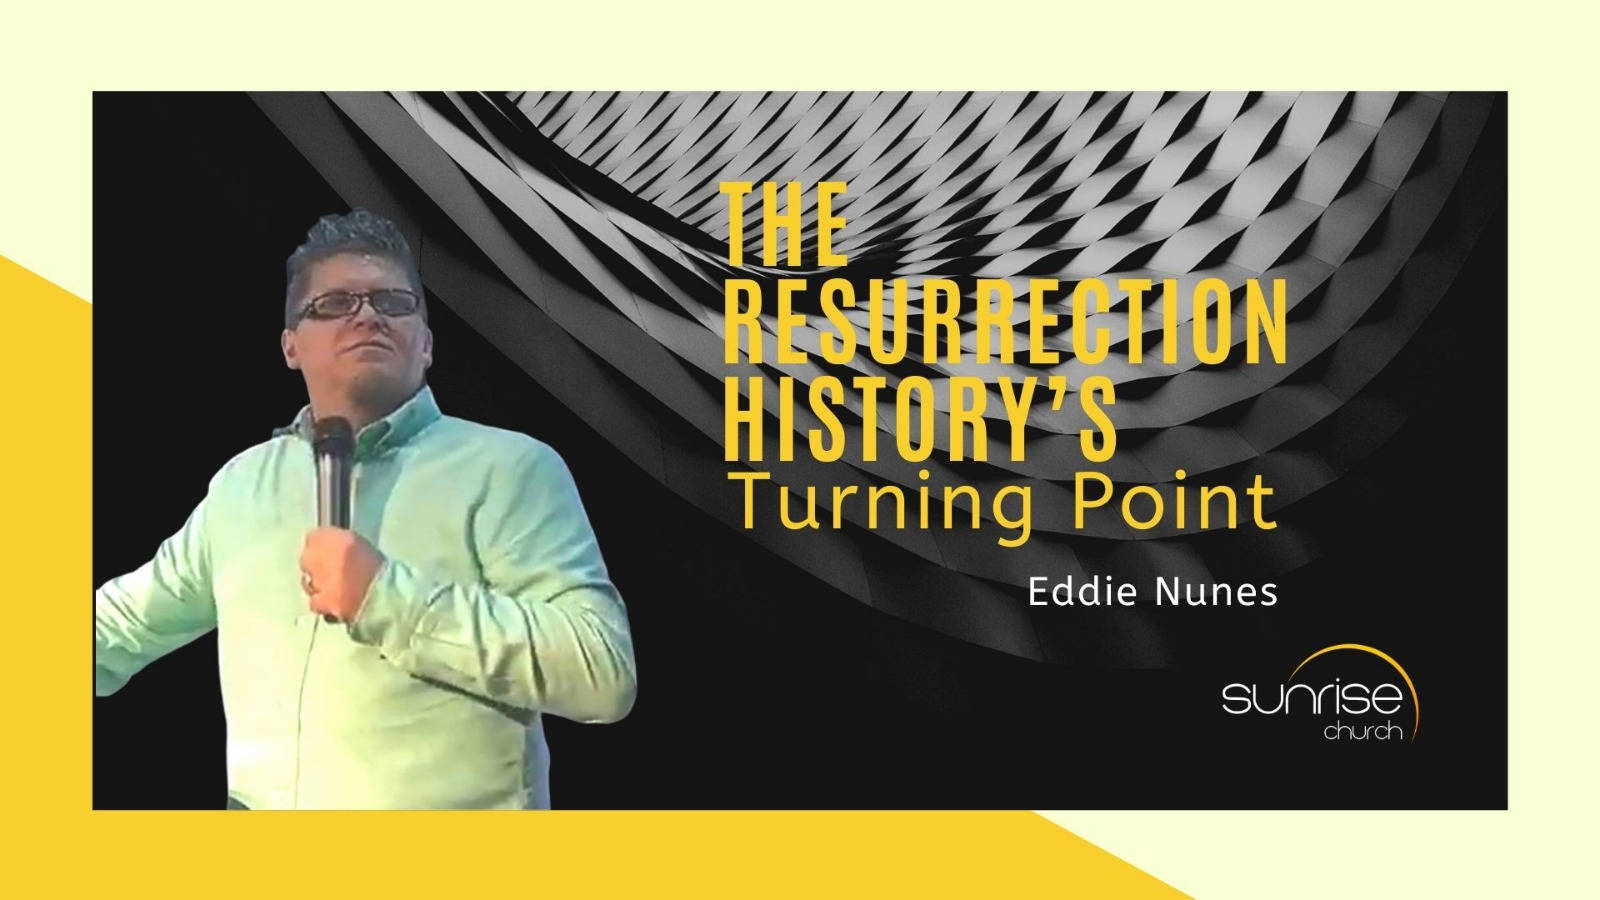 The Resurrection History's Turning Point